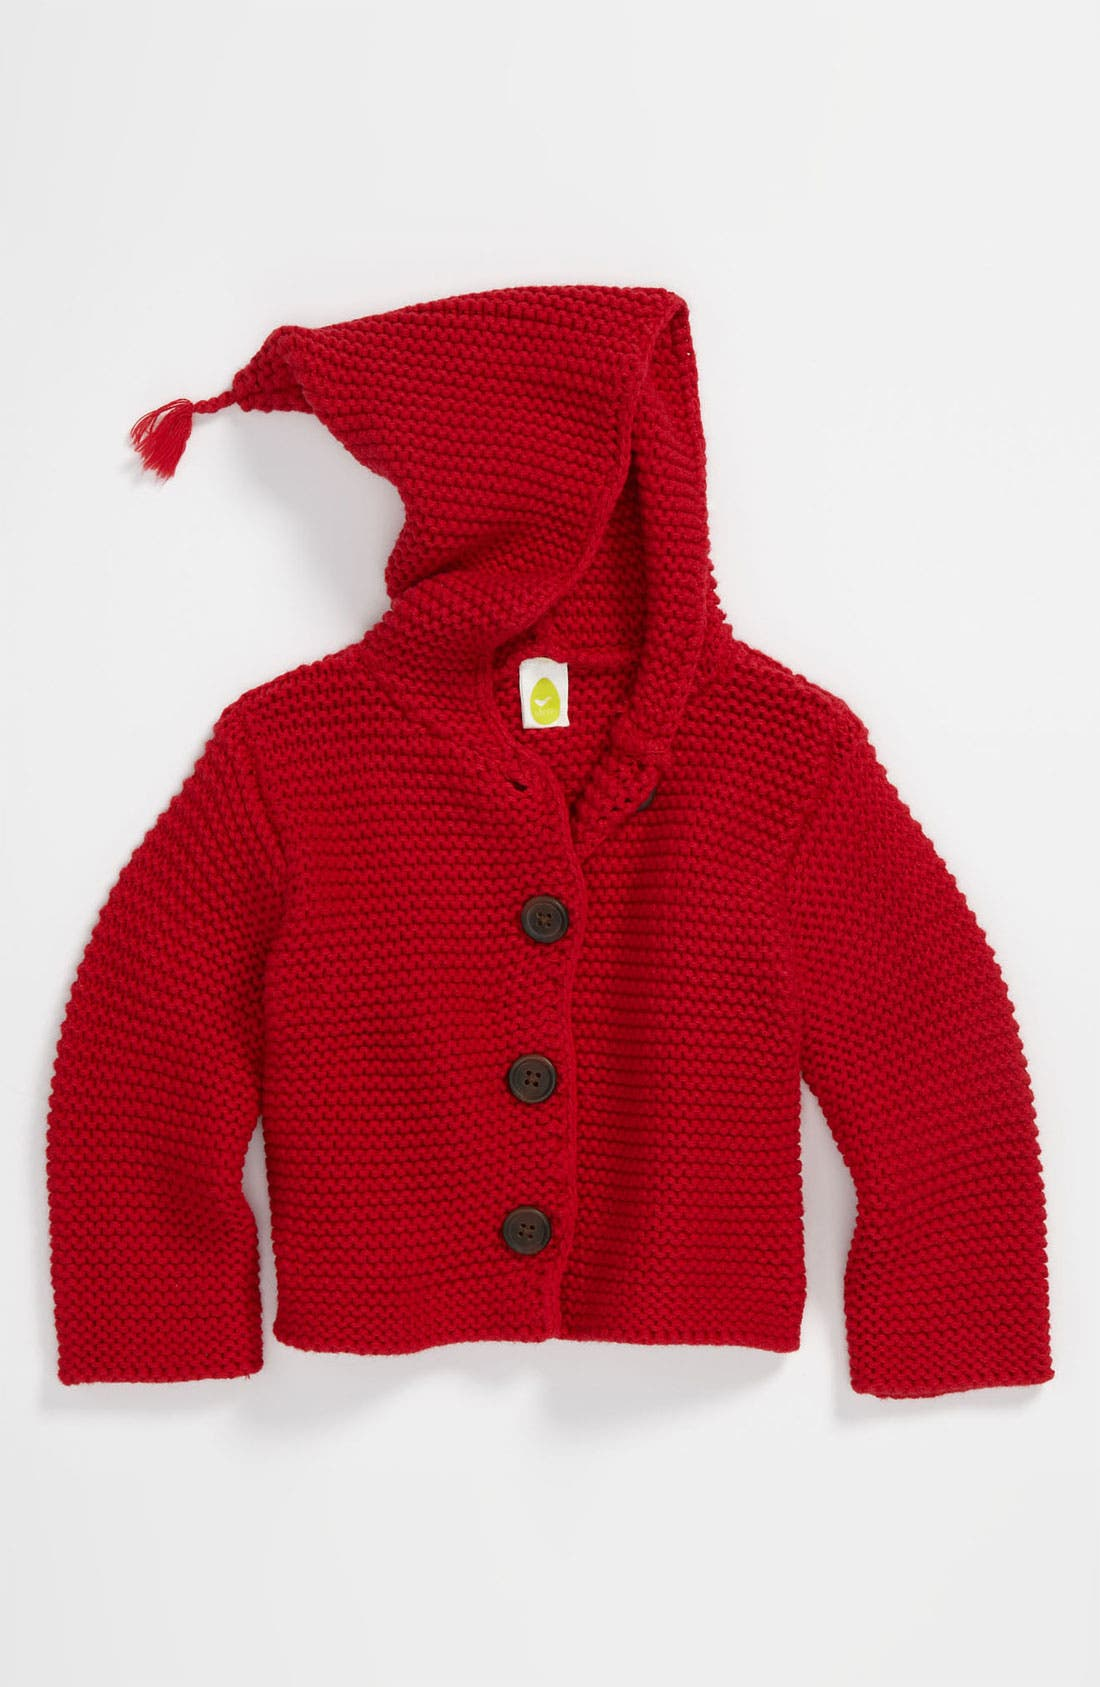 Main Image - Stem Baby 'Lofty' Organic Cotton Hooded Cardigan (Baby Boys) (Nordstrom Exclusive)